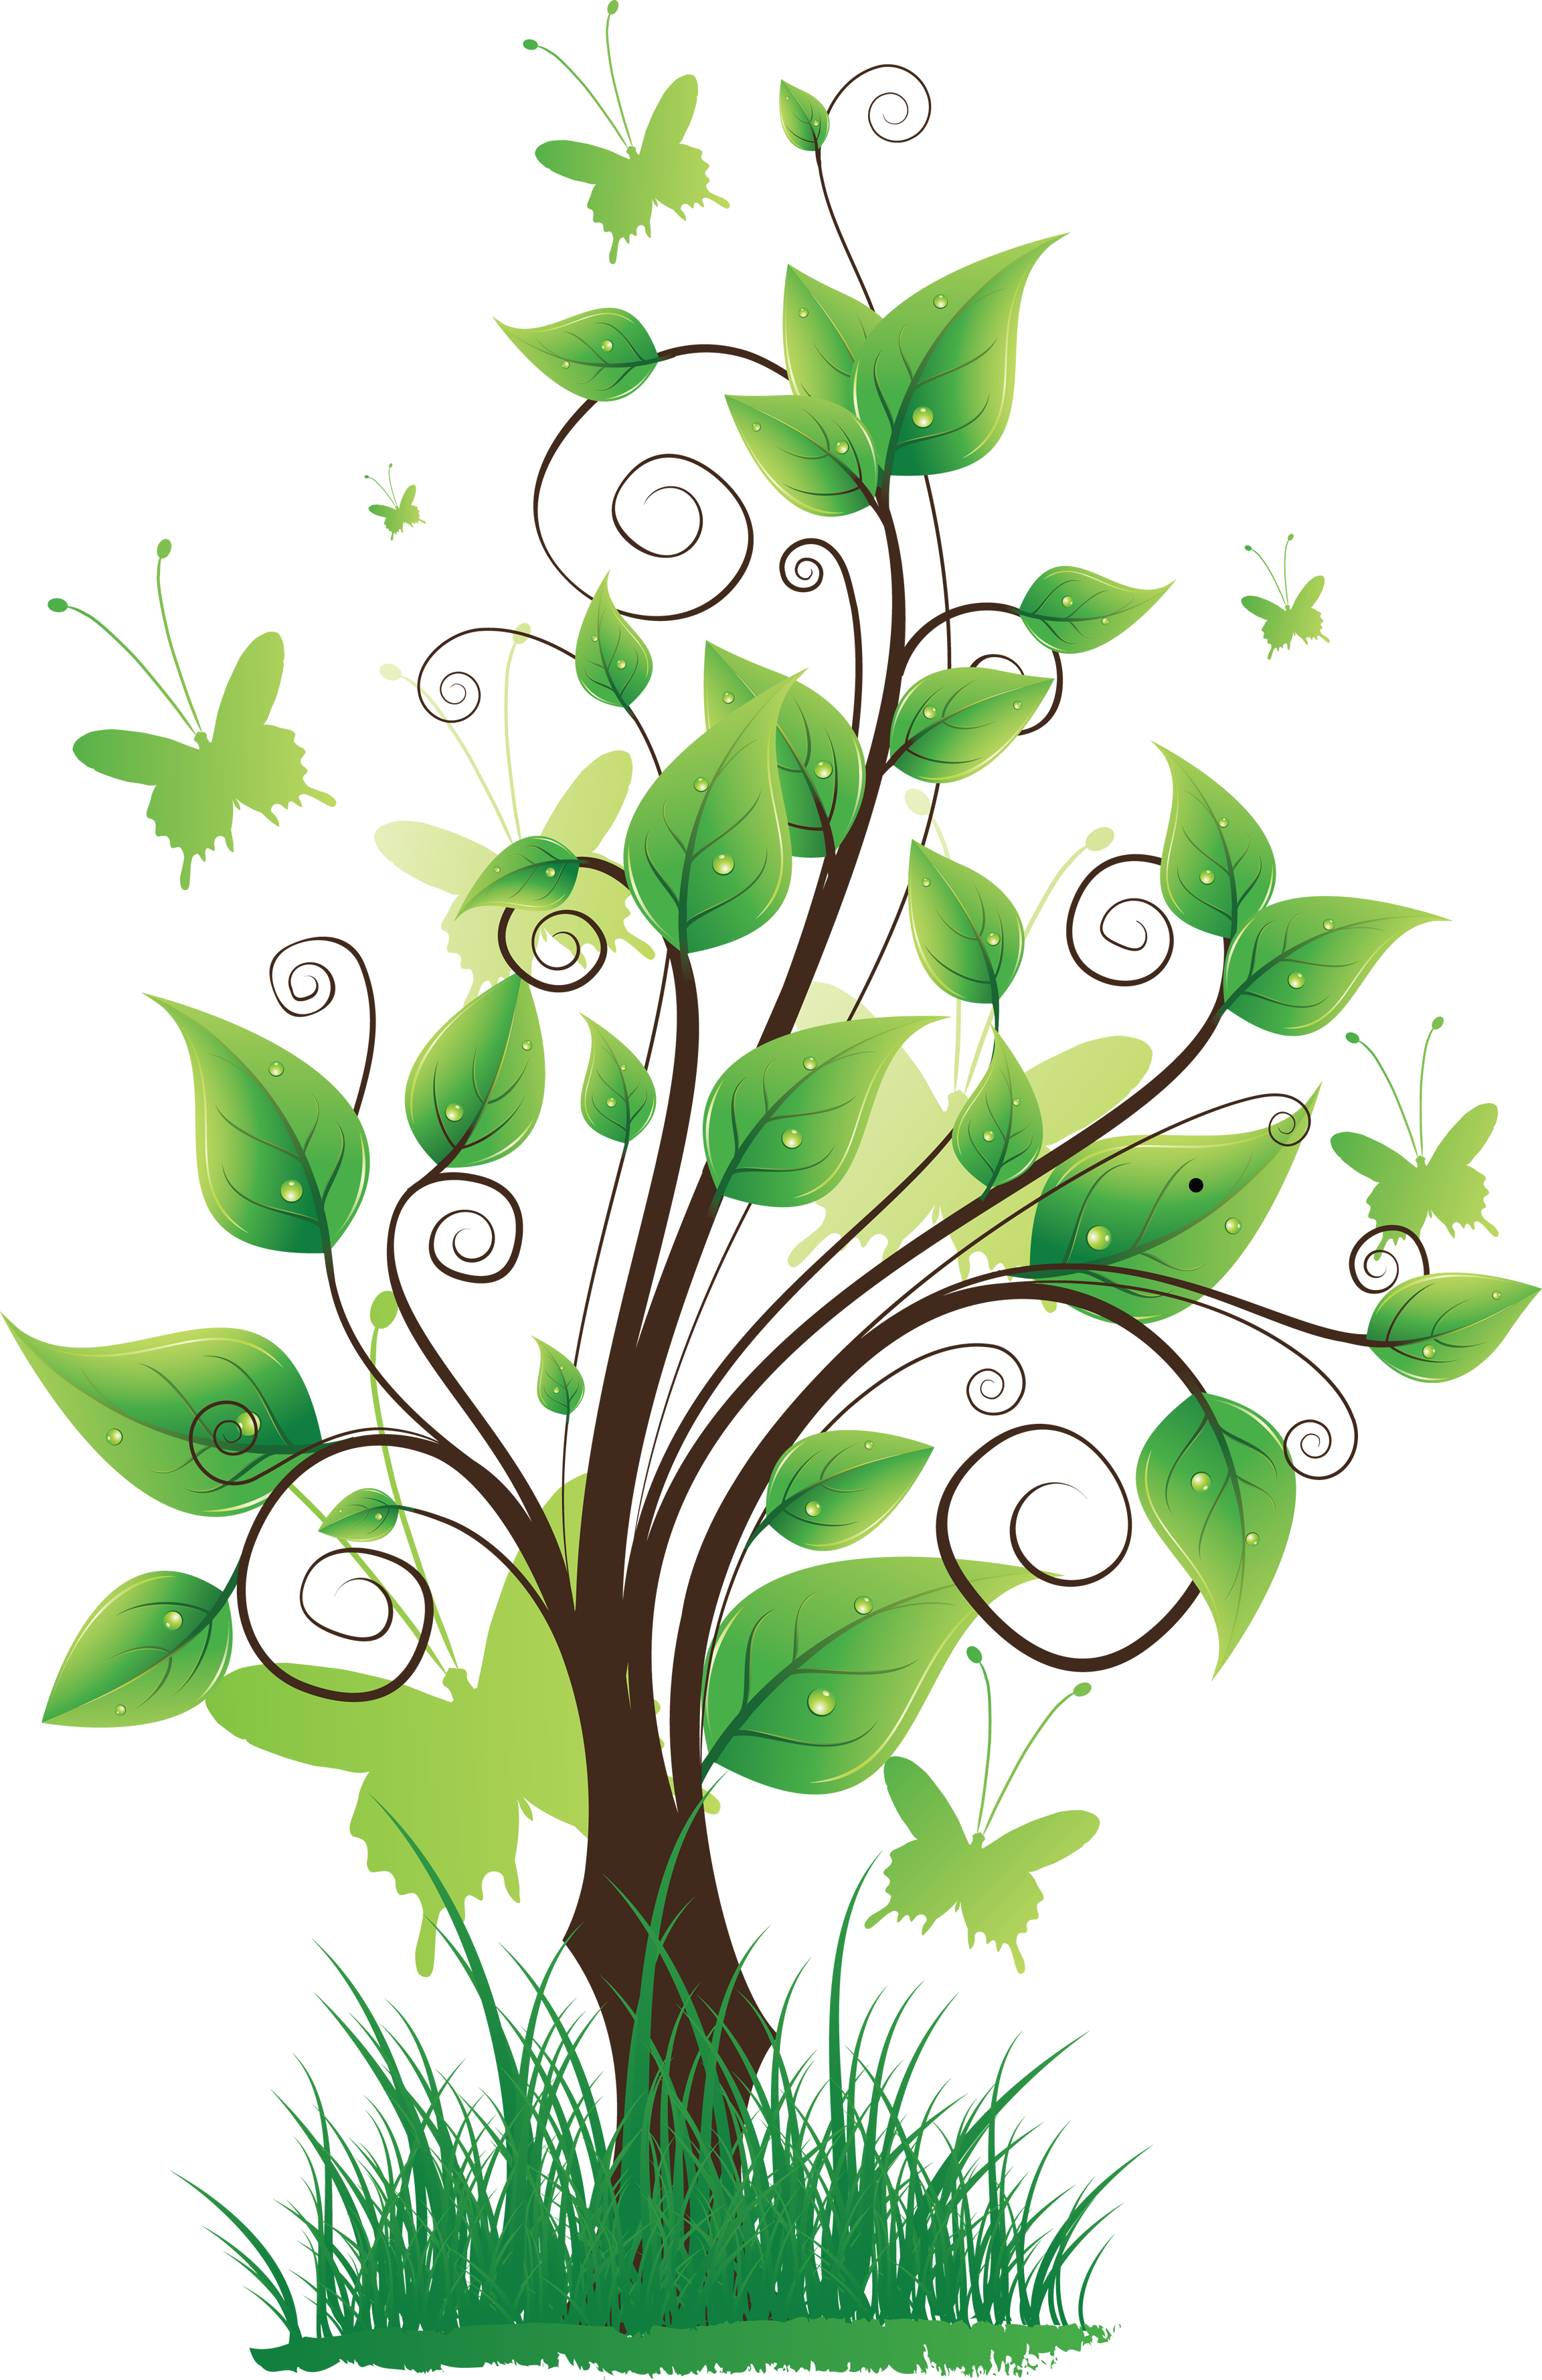 Flower tree clipart png picture transparent download Tree png images, pictures, download free picture transparent download